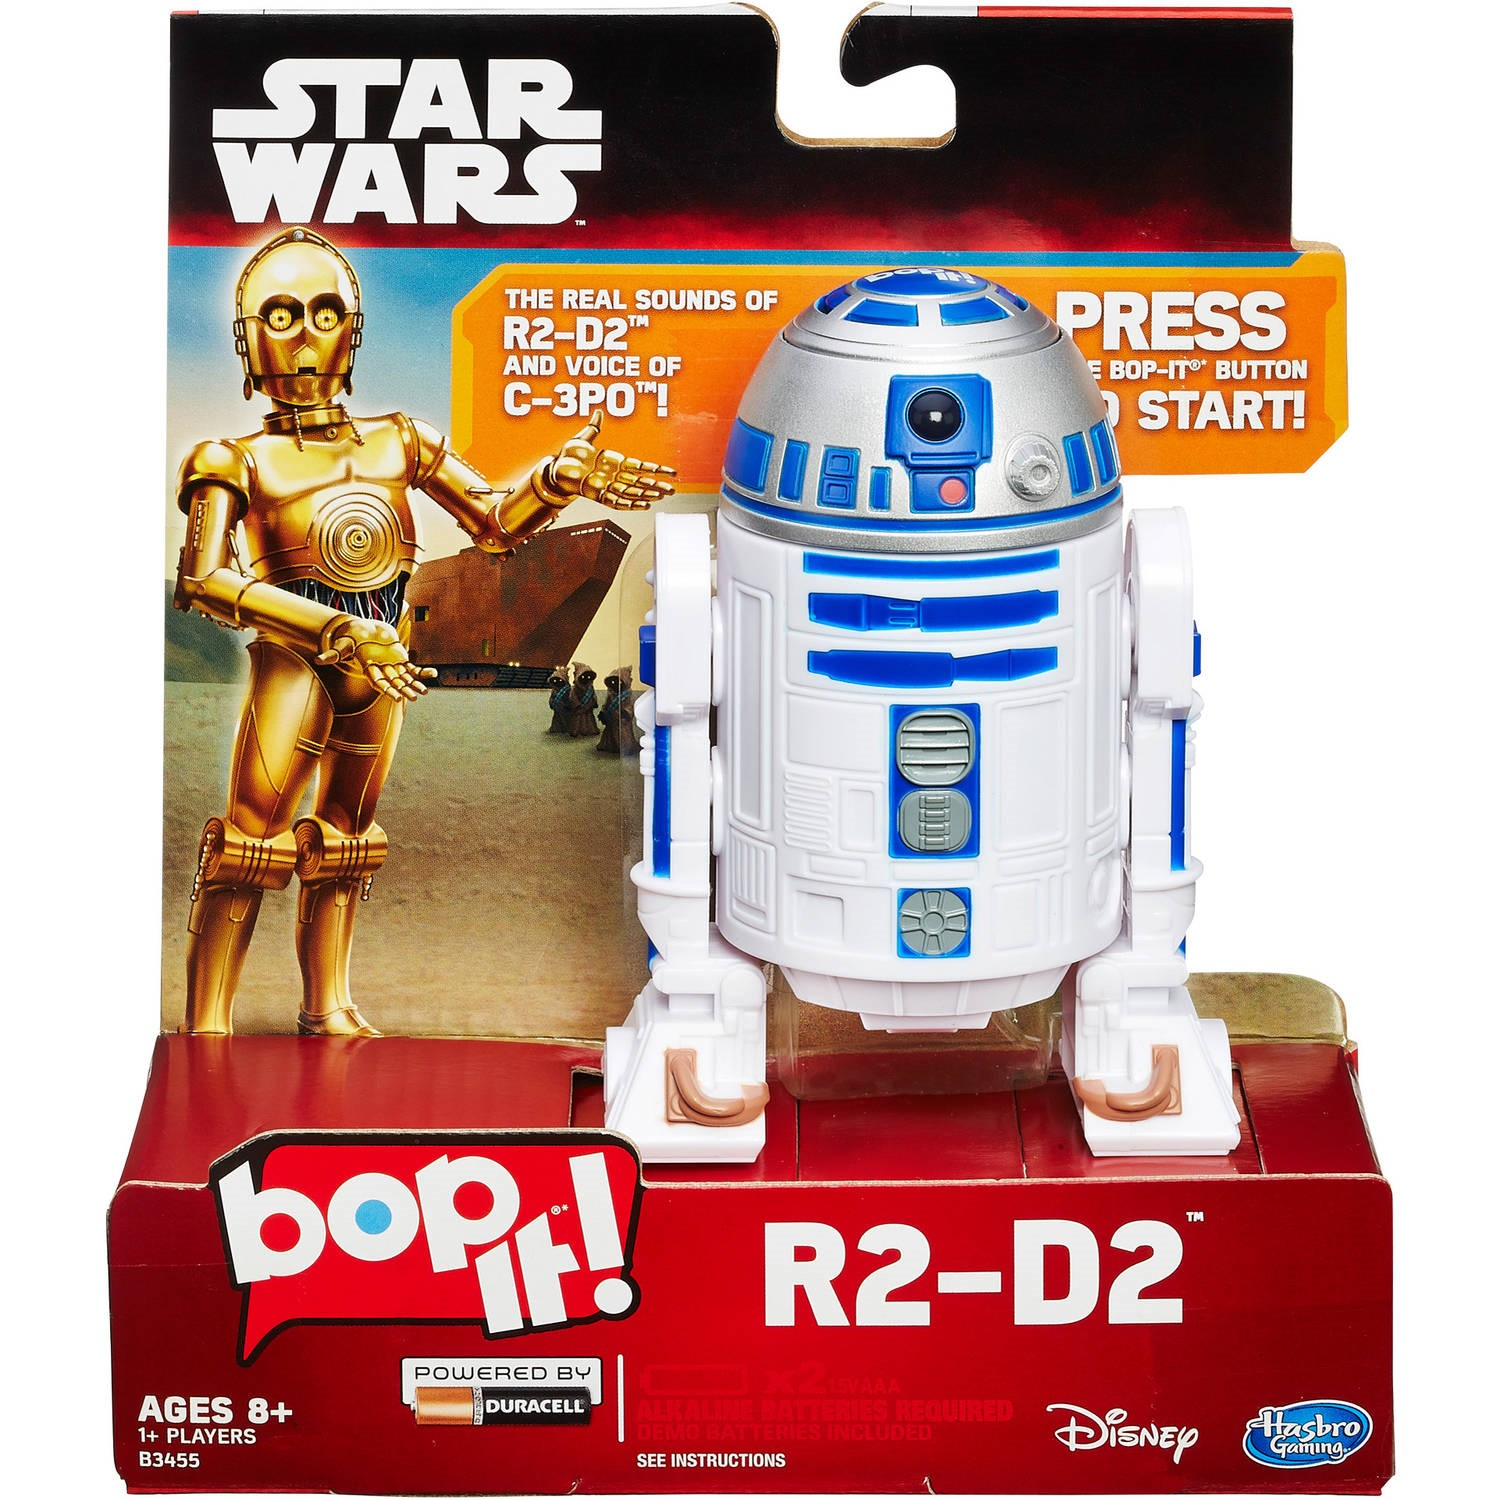 Bop It! Star Wars R2-D2 Edition Game, Ages 8 and up